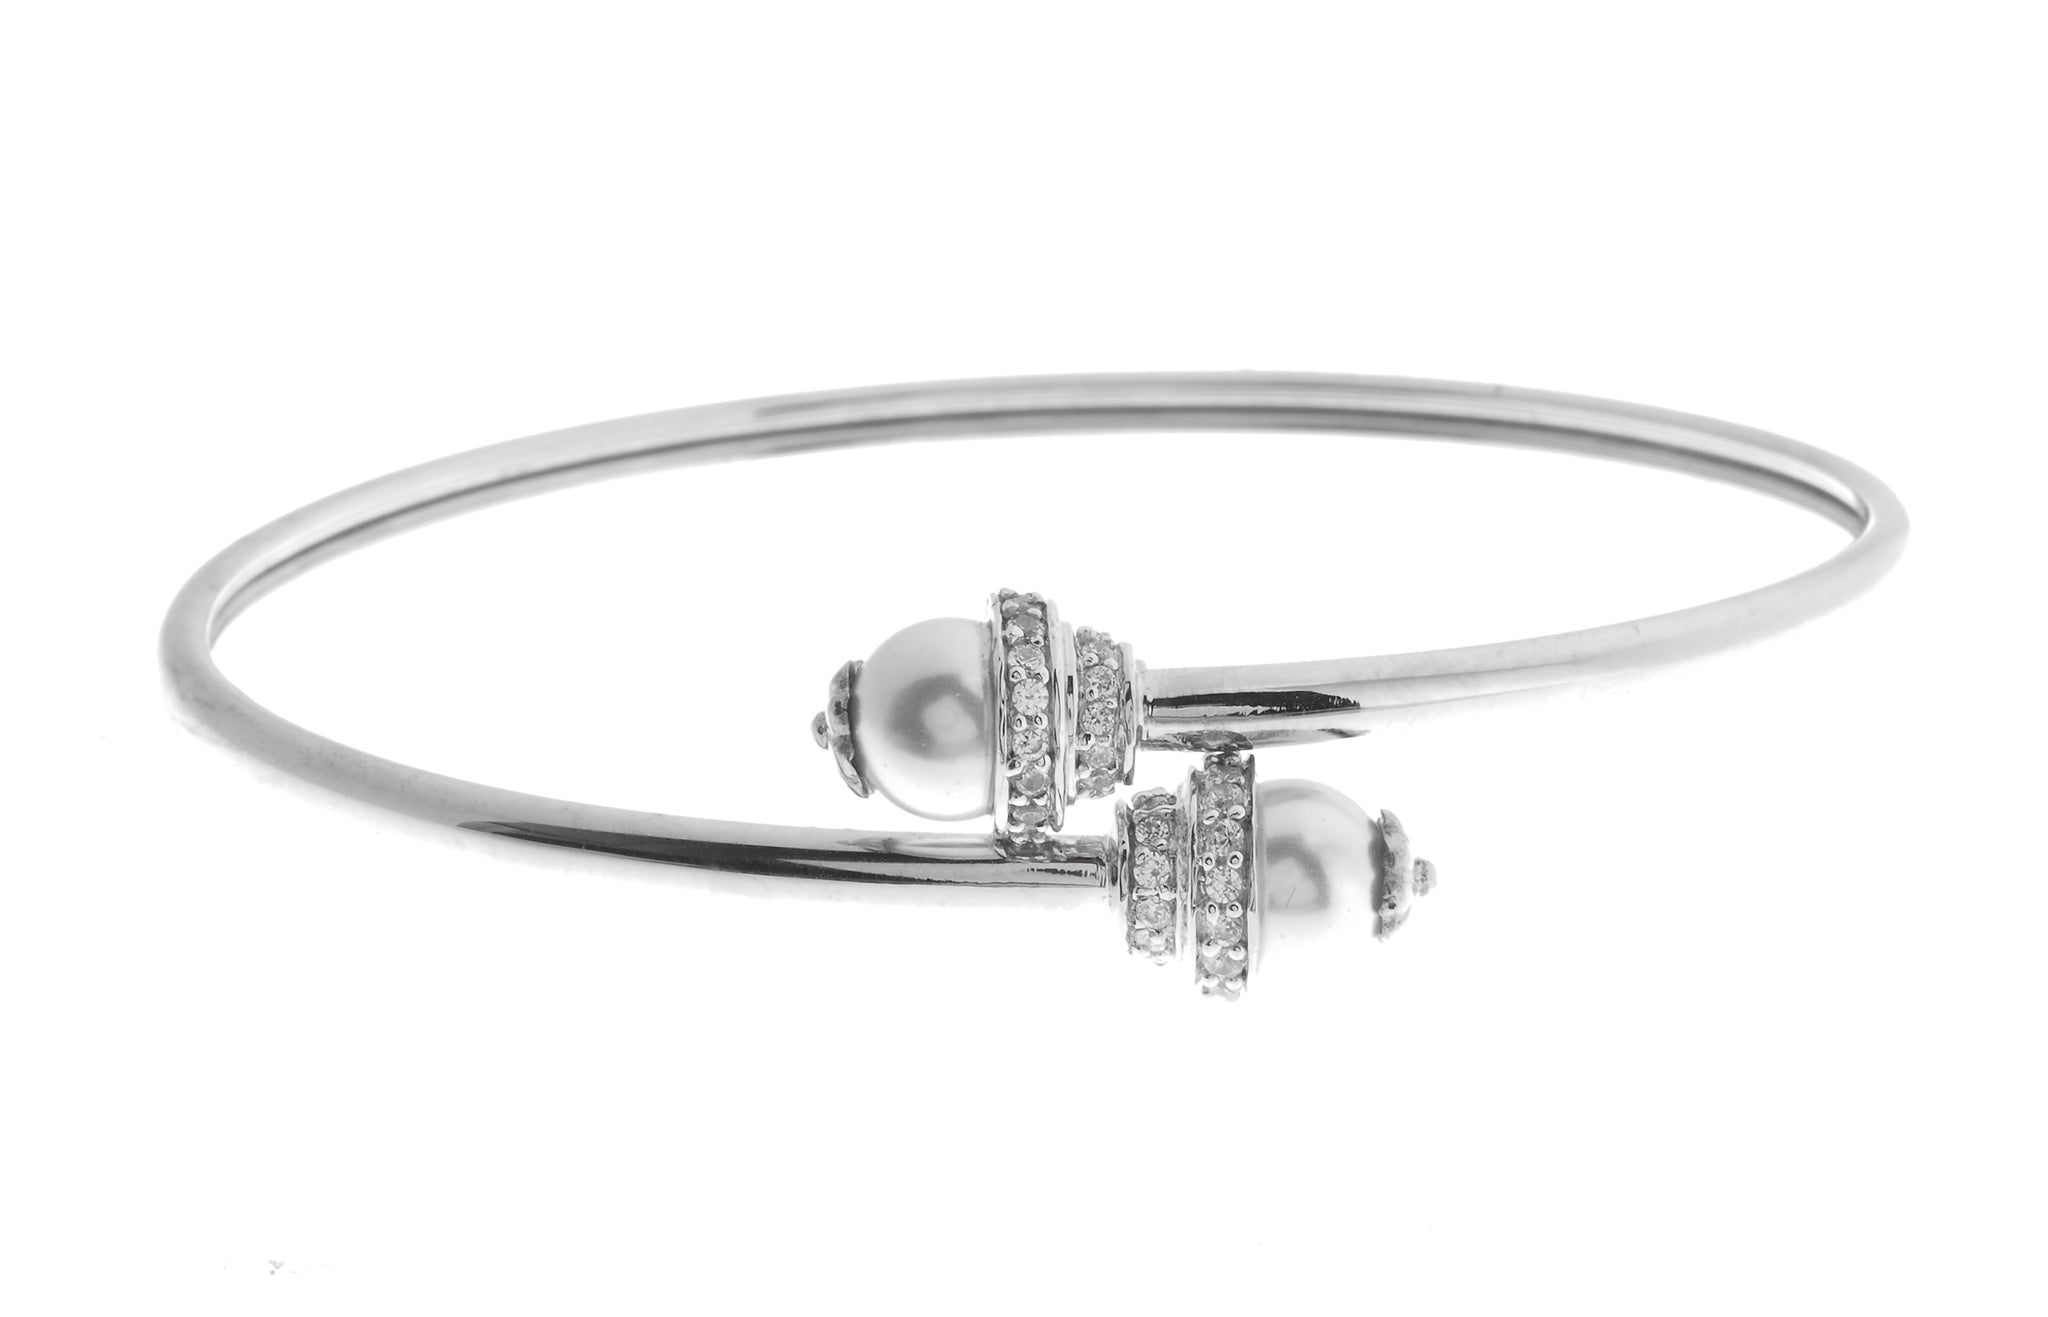 18ct White Gold Bangle with Cubic Zirconia Stones (10.71g) (LKB9005)